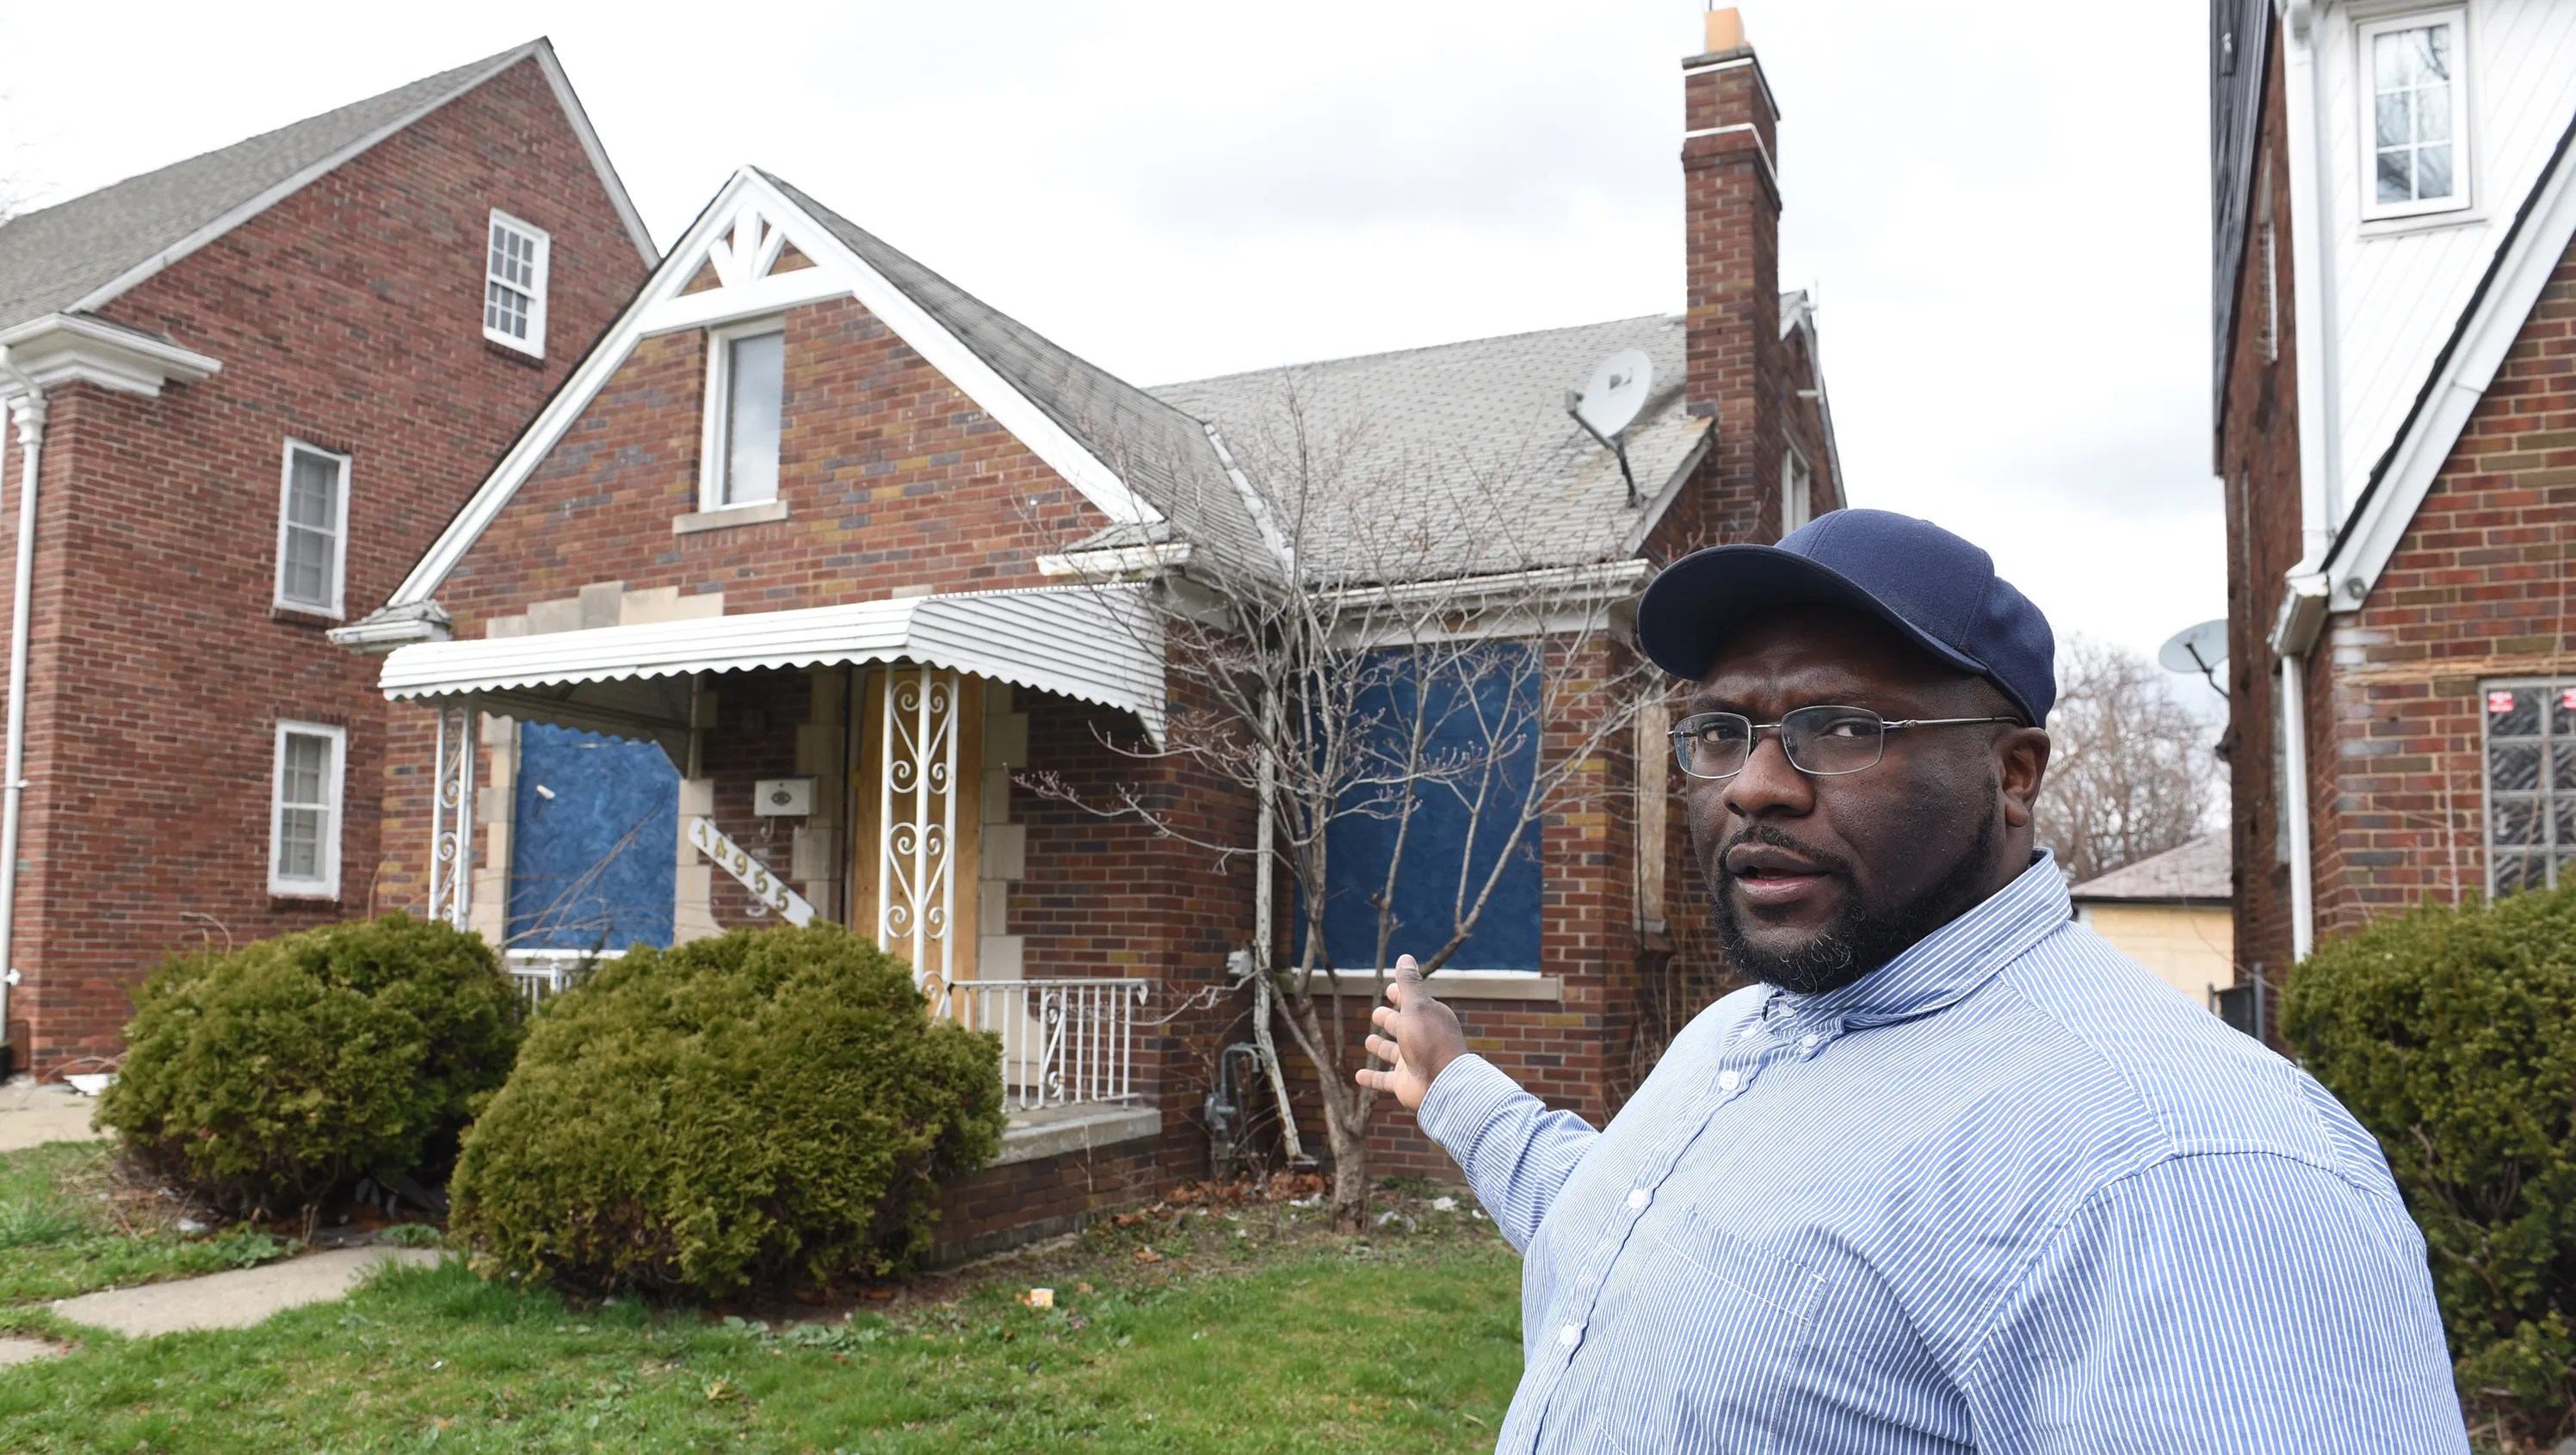 Residents around Detroit's 'Red Zone' want better for community